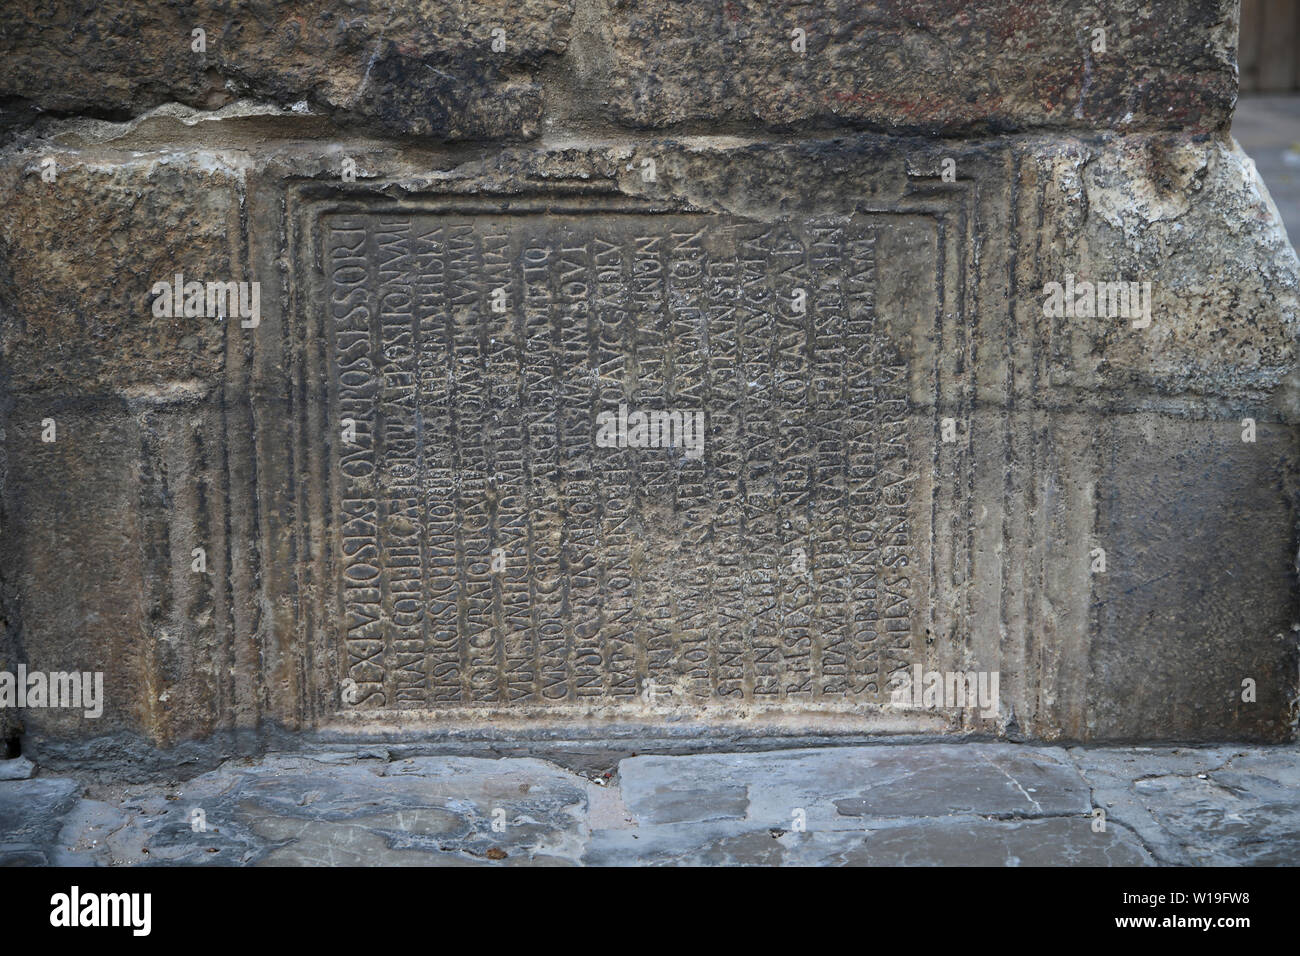 Roman gravestone. 2nd century AD. Giralda. Cathedral of Sevilles. Andalusia. Spain. - Stock Image